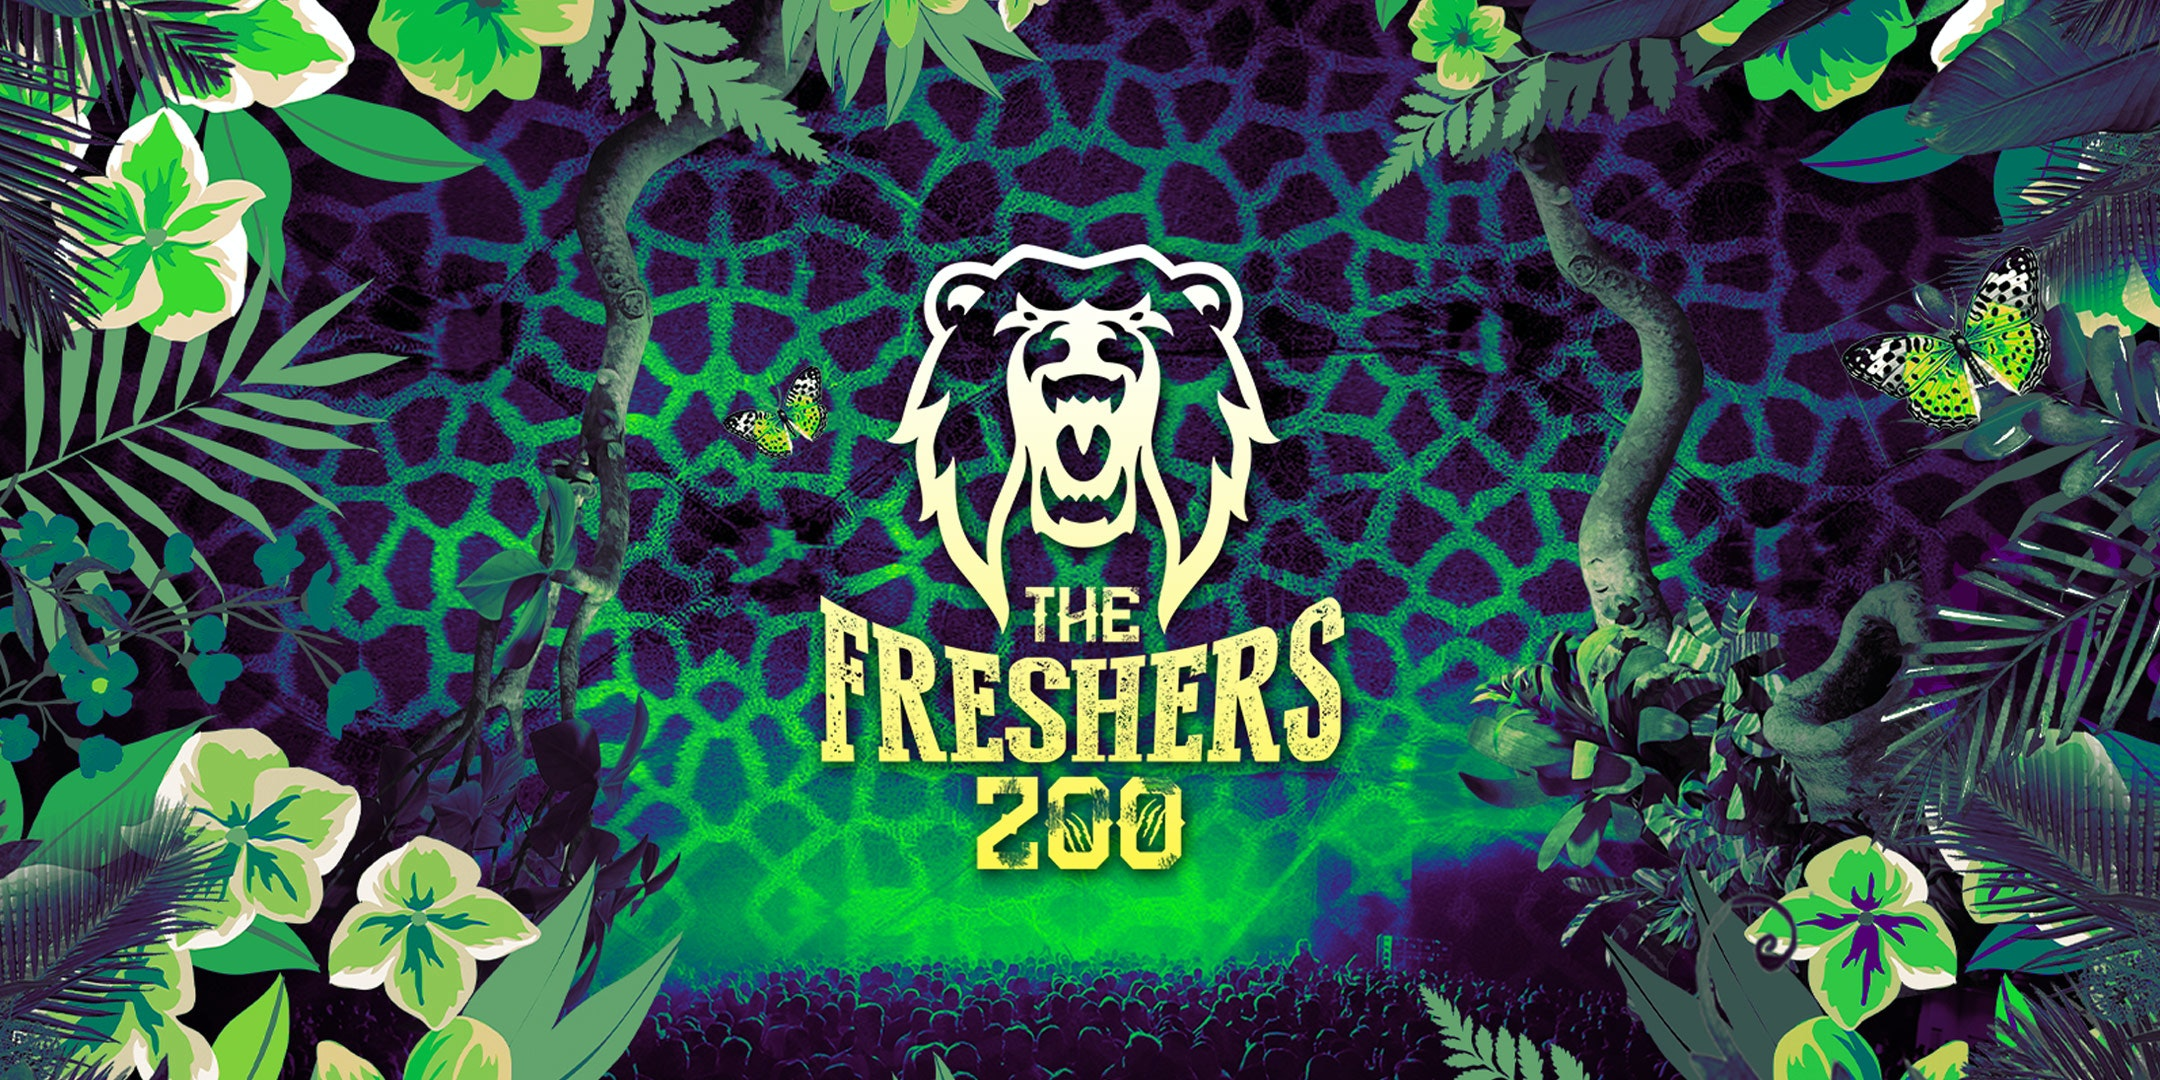 The Freshers Zoo | Coventry Freshers 2021